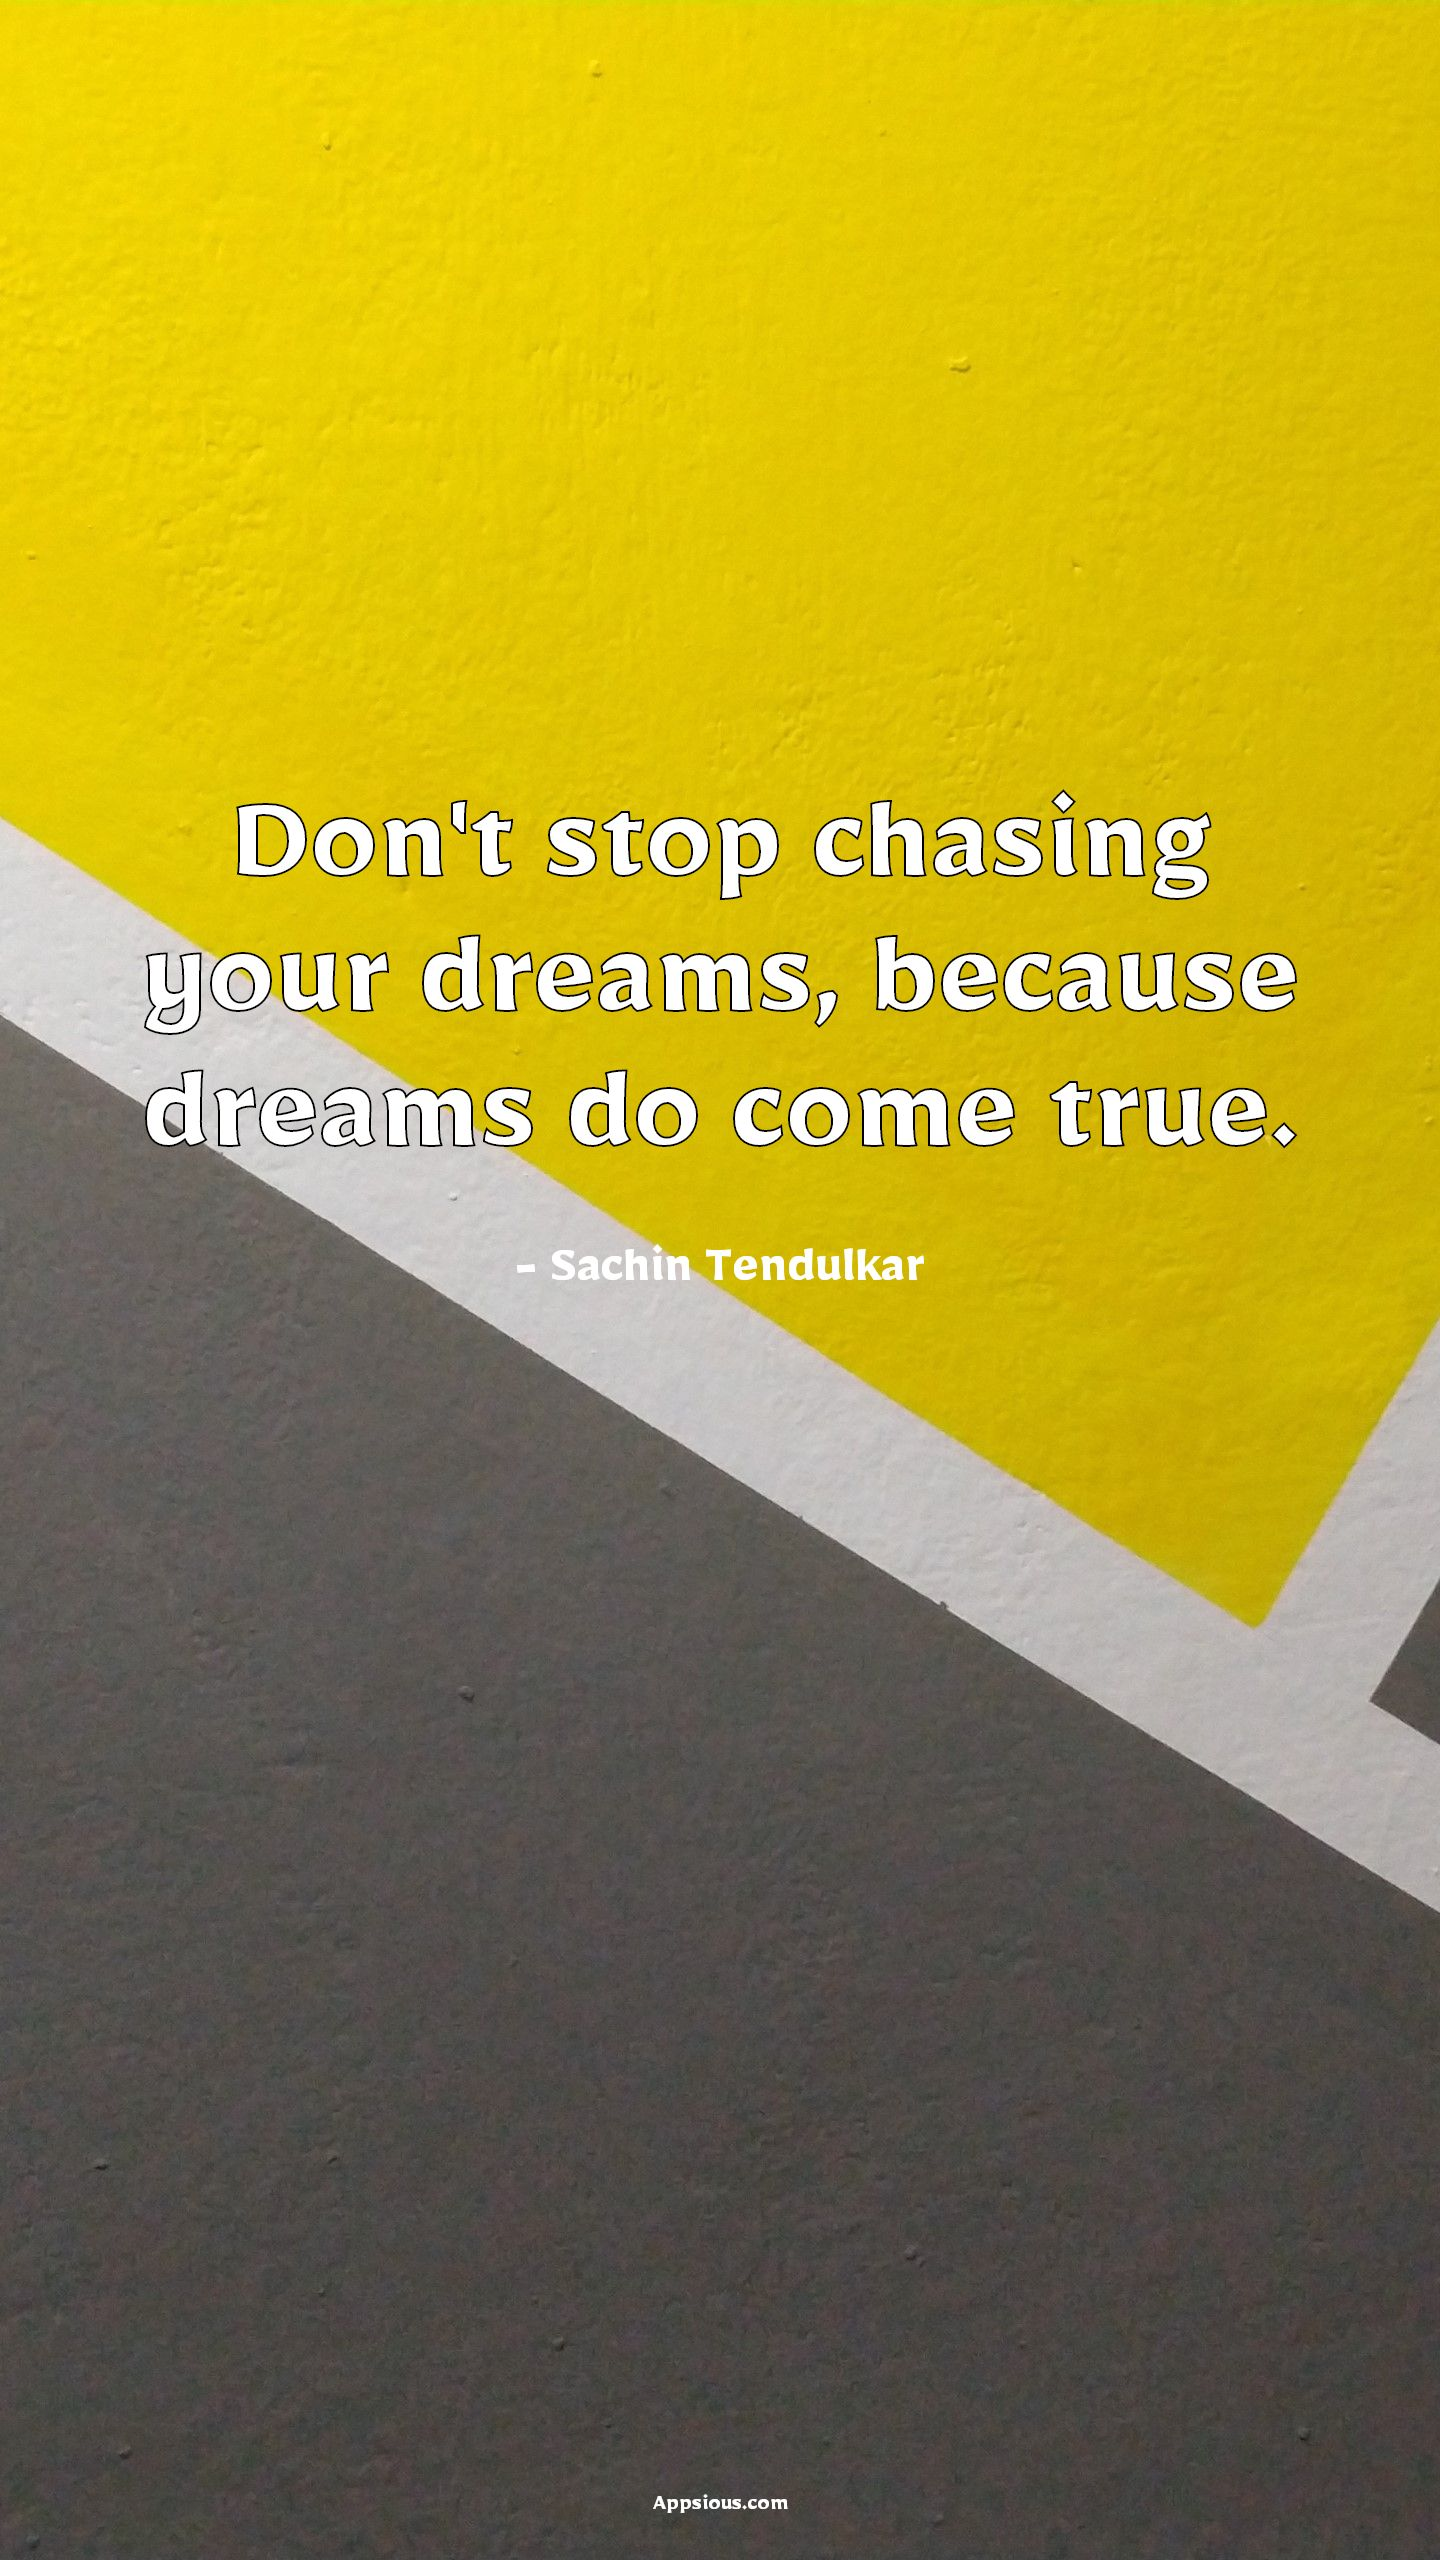 Don't stop chasing your dreams, because dreams do come true.